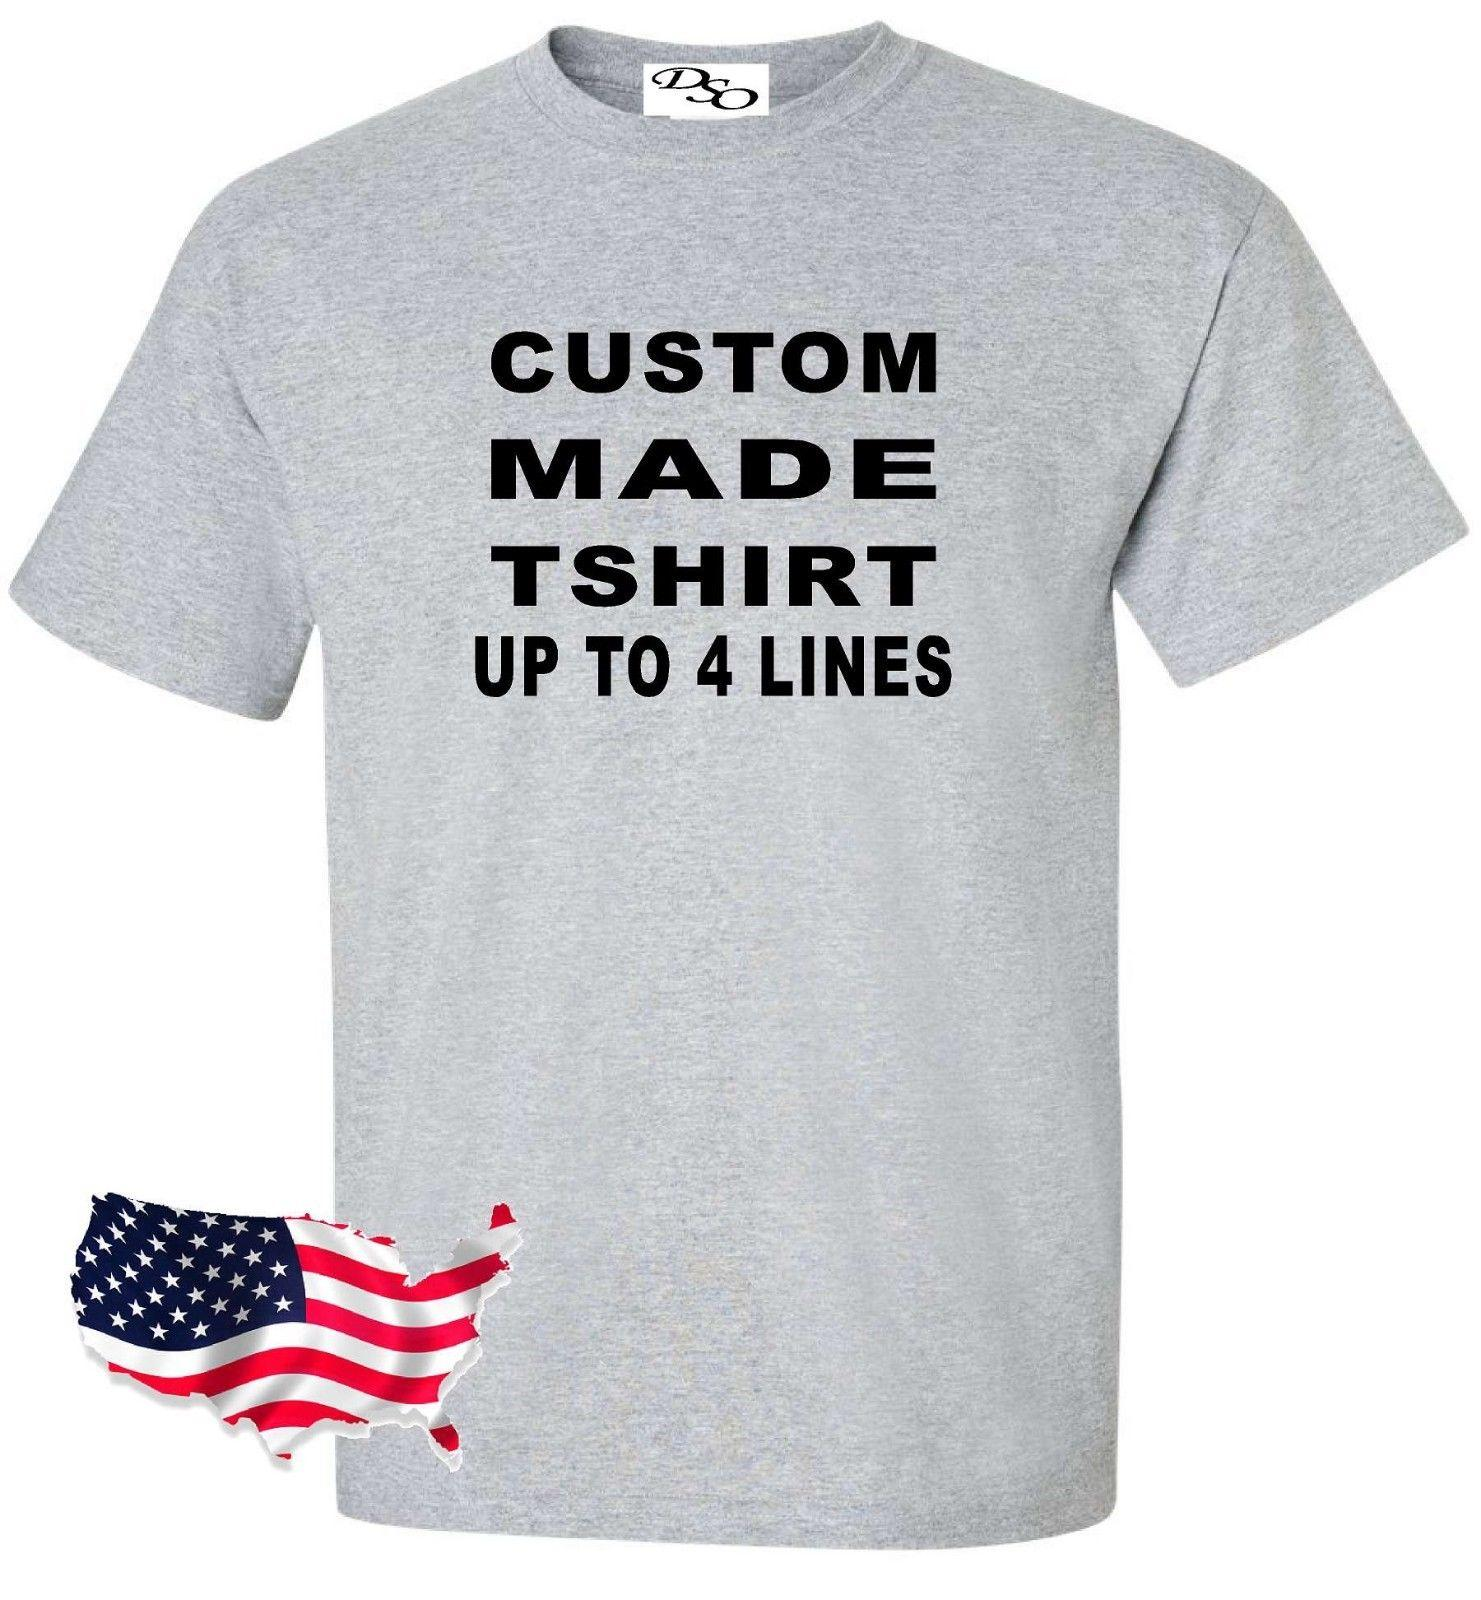 bffa0216f5c Made Shirt Make Your Own Personalized 16 Tee Colors SM 6X High Quality  Custom Printed